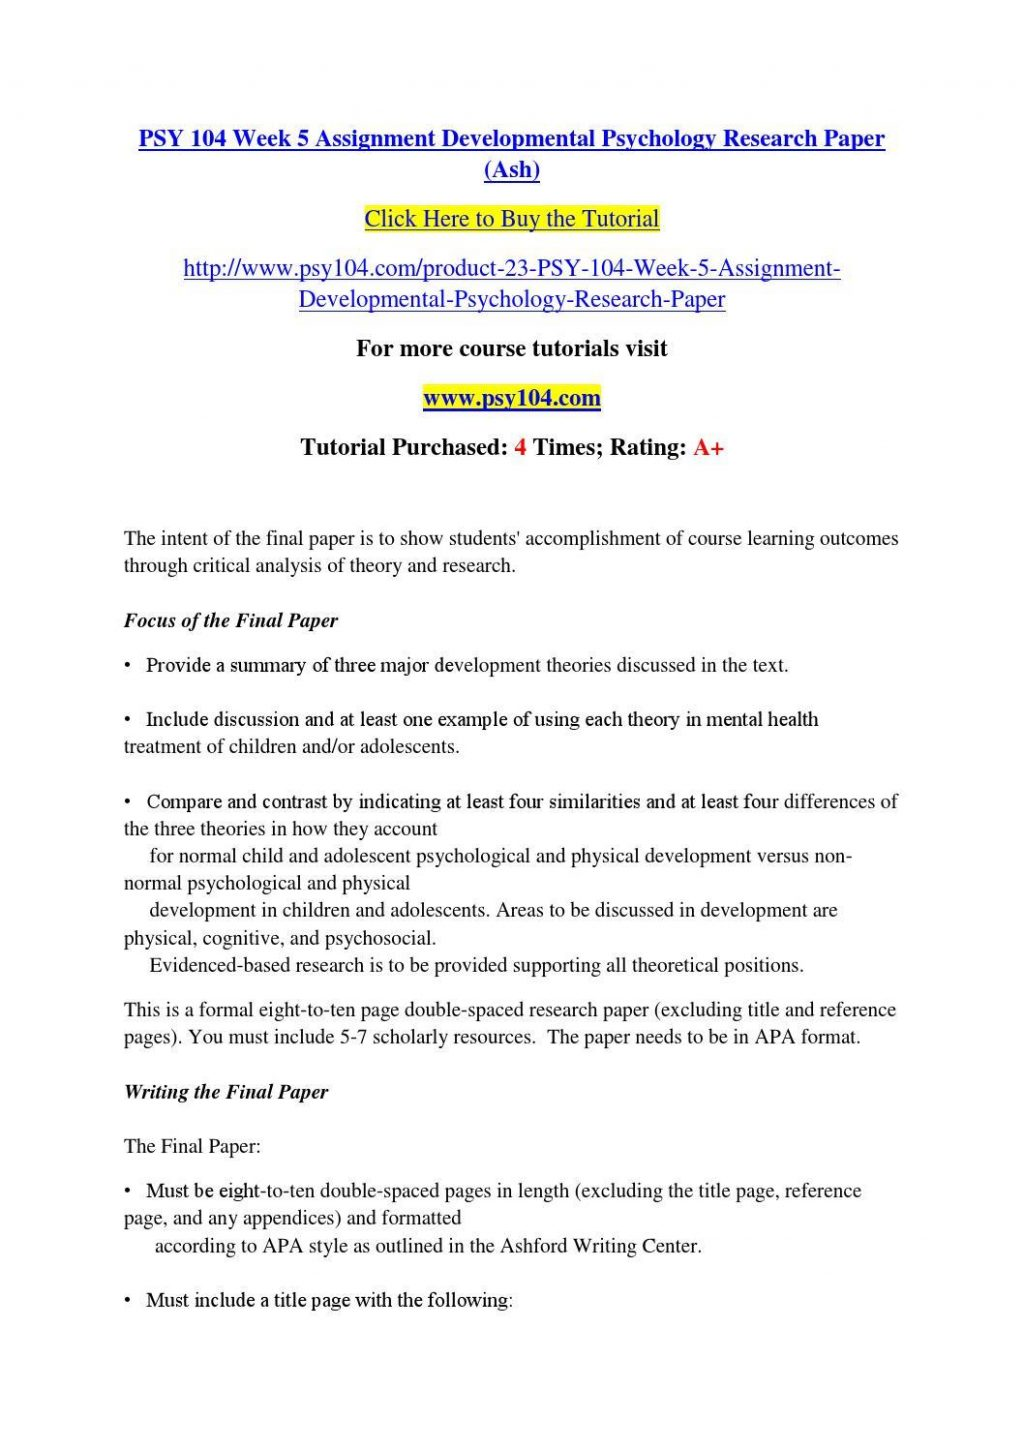 003 Developmental Psychology Essay Ideas Structure Psychological20ent Paper Topics Pdf20 1024x1449 Research Child For Dreaded Papers Full